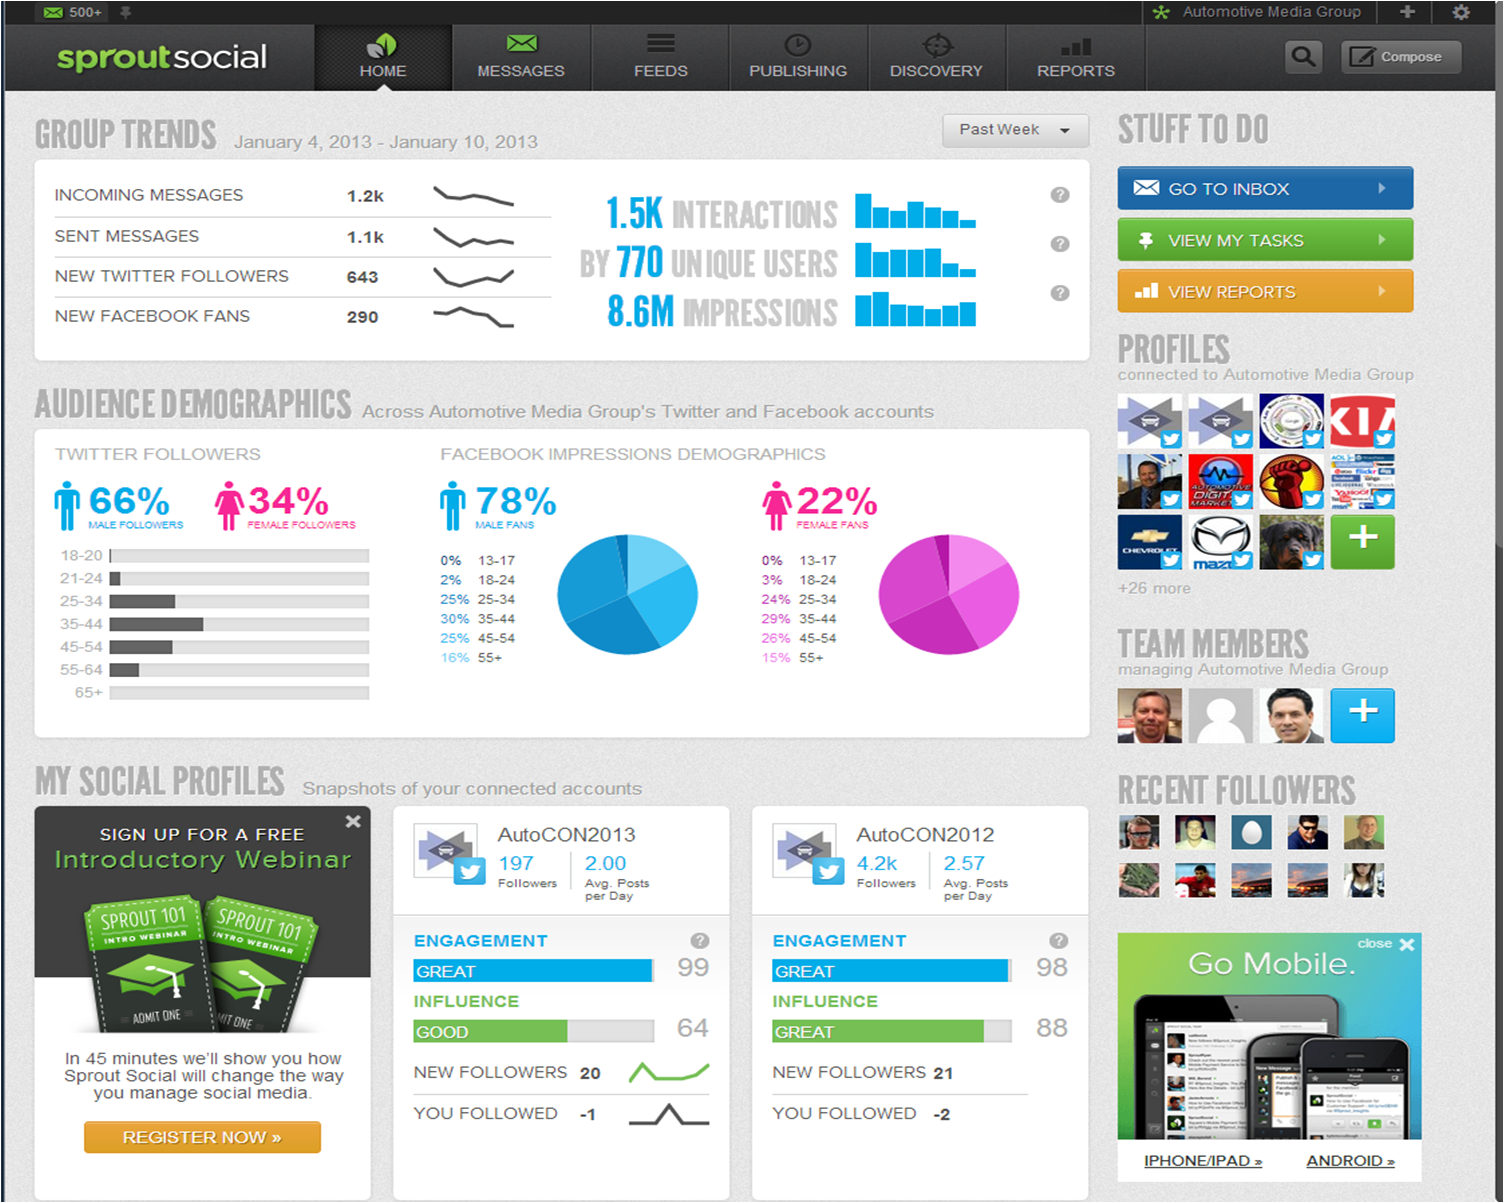 sprout social Google Search Data visualization, New